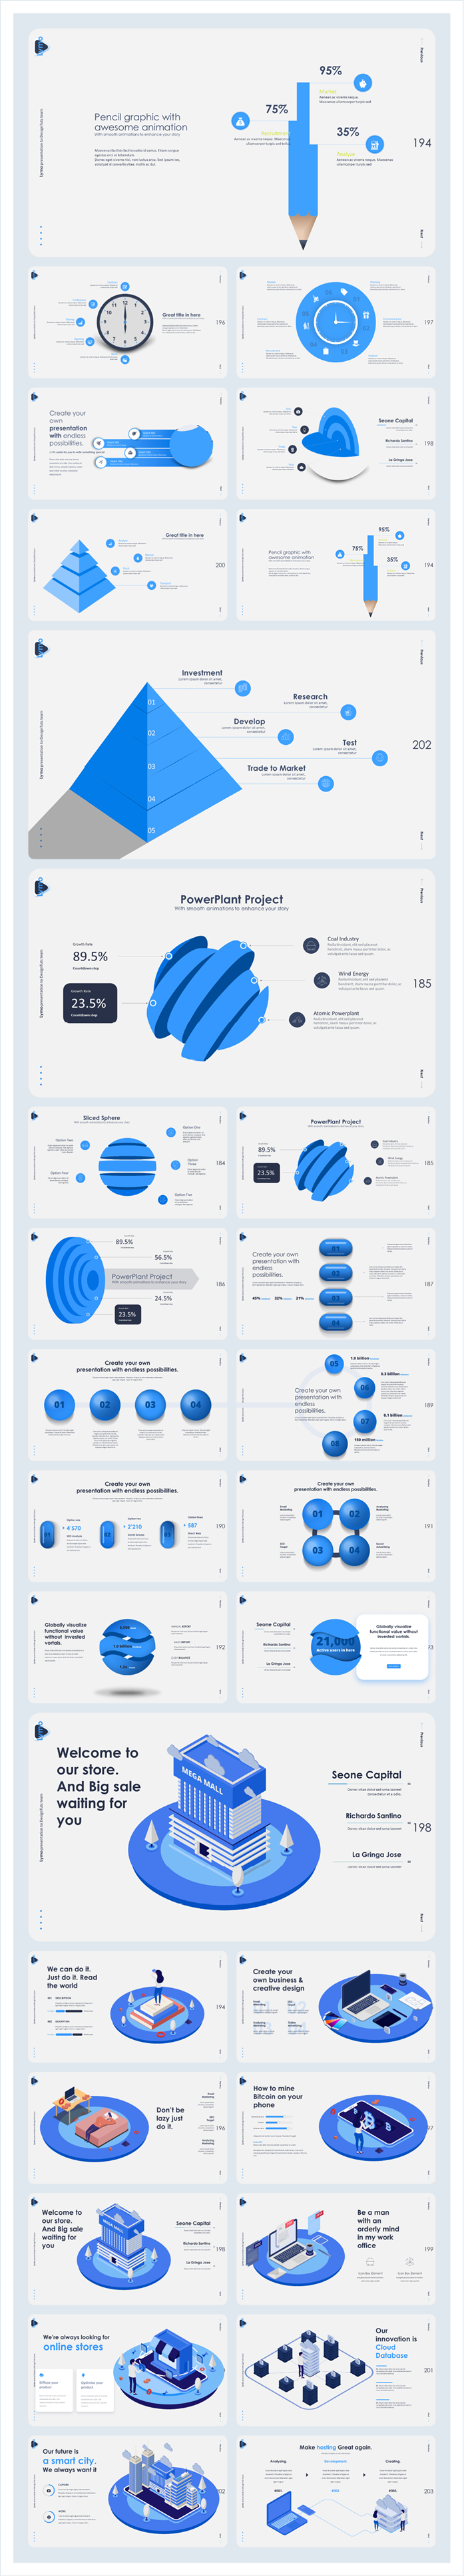 Lymo Powerpoint Presentation Template - 21